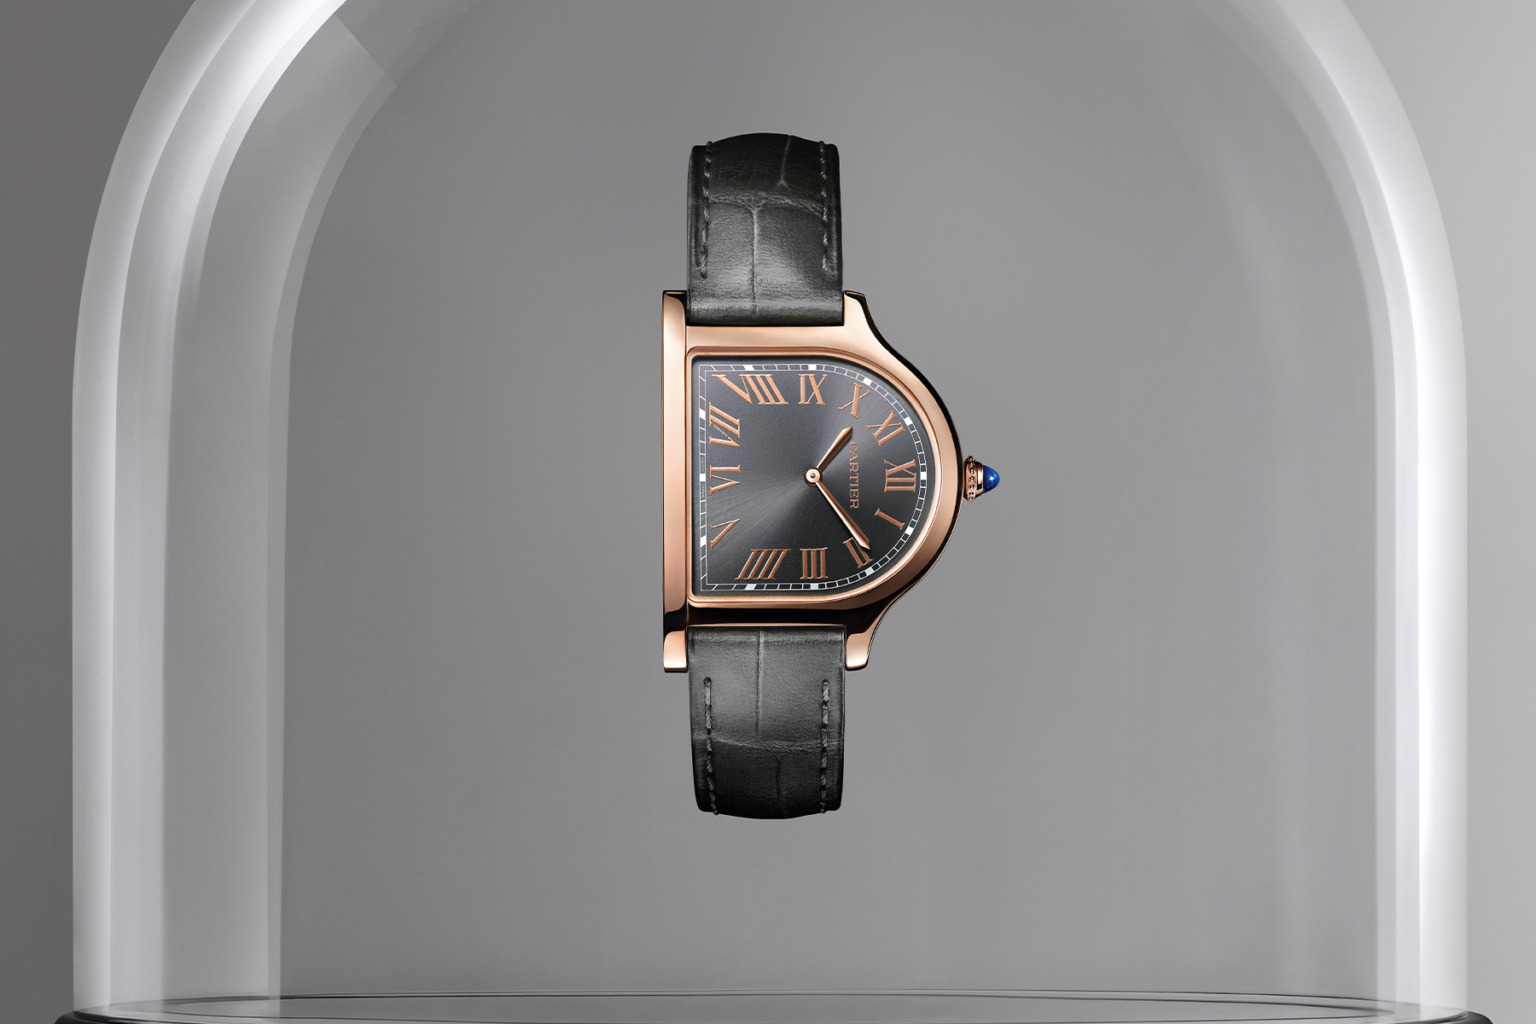 đồng hồ Clothe de Cartier Privé ra mắt tại watches and wonder 2021